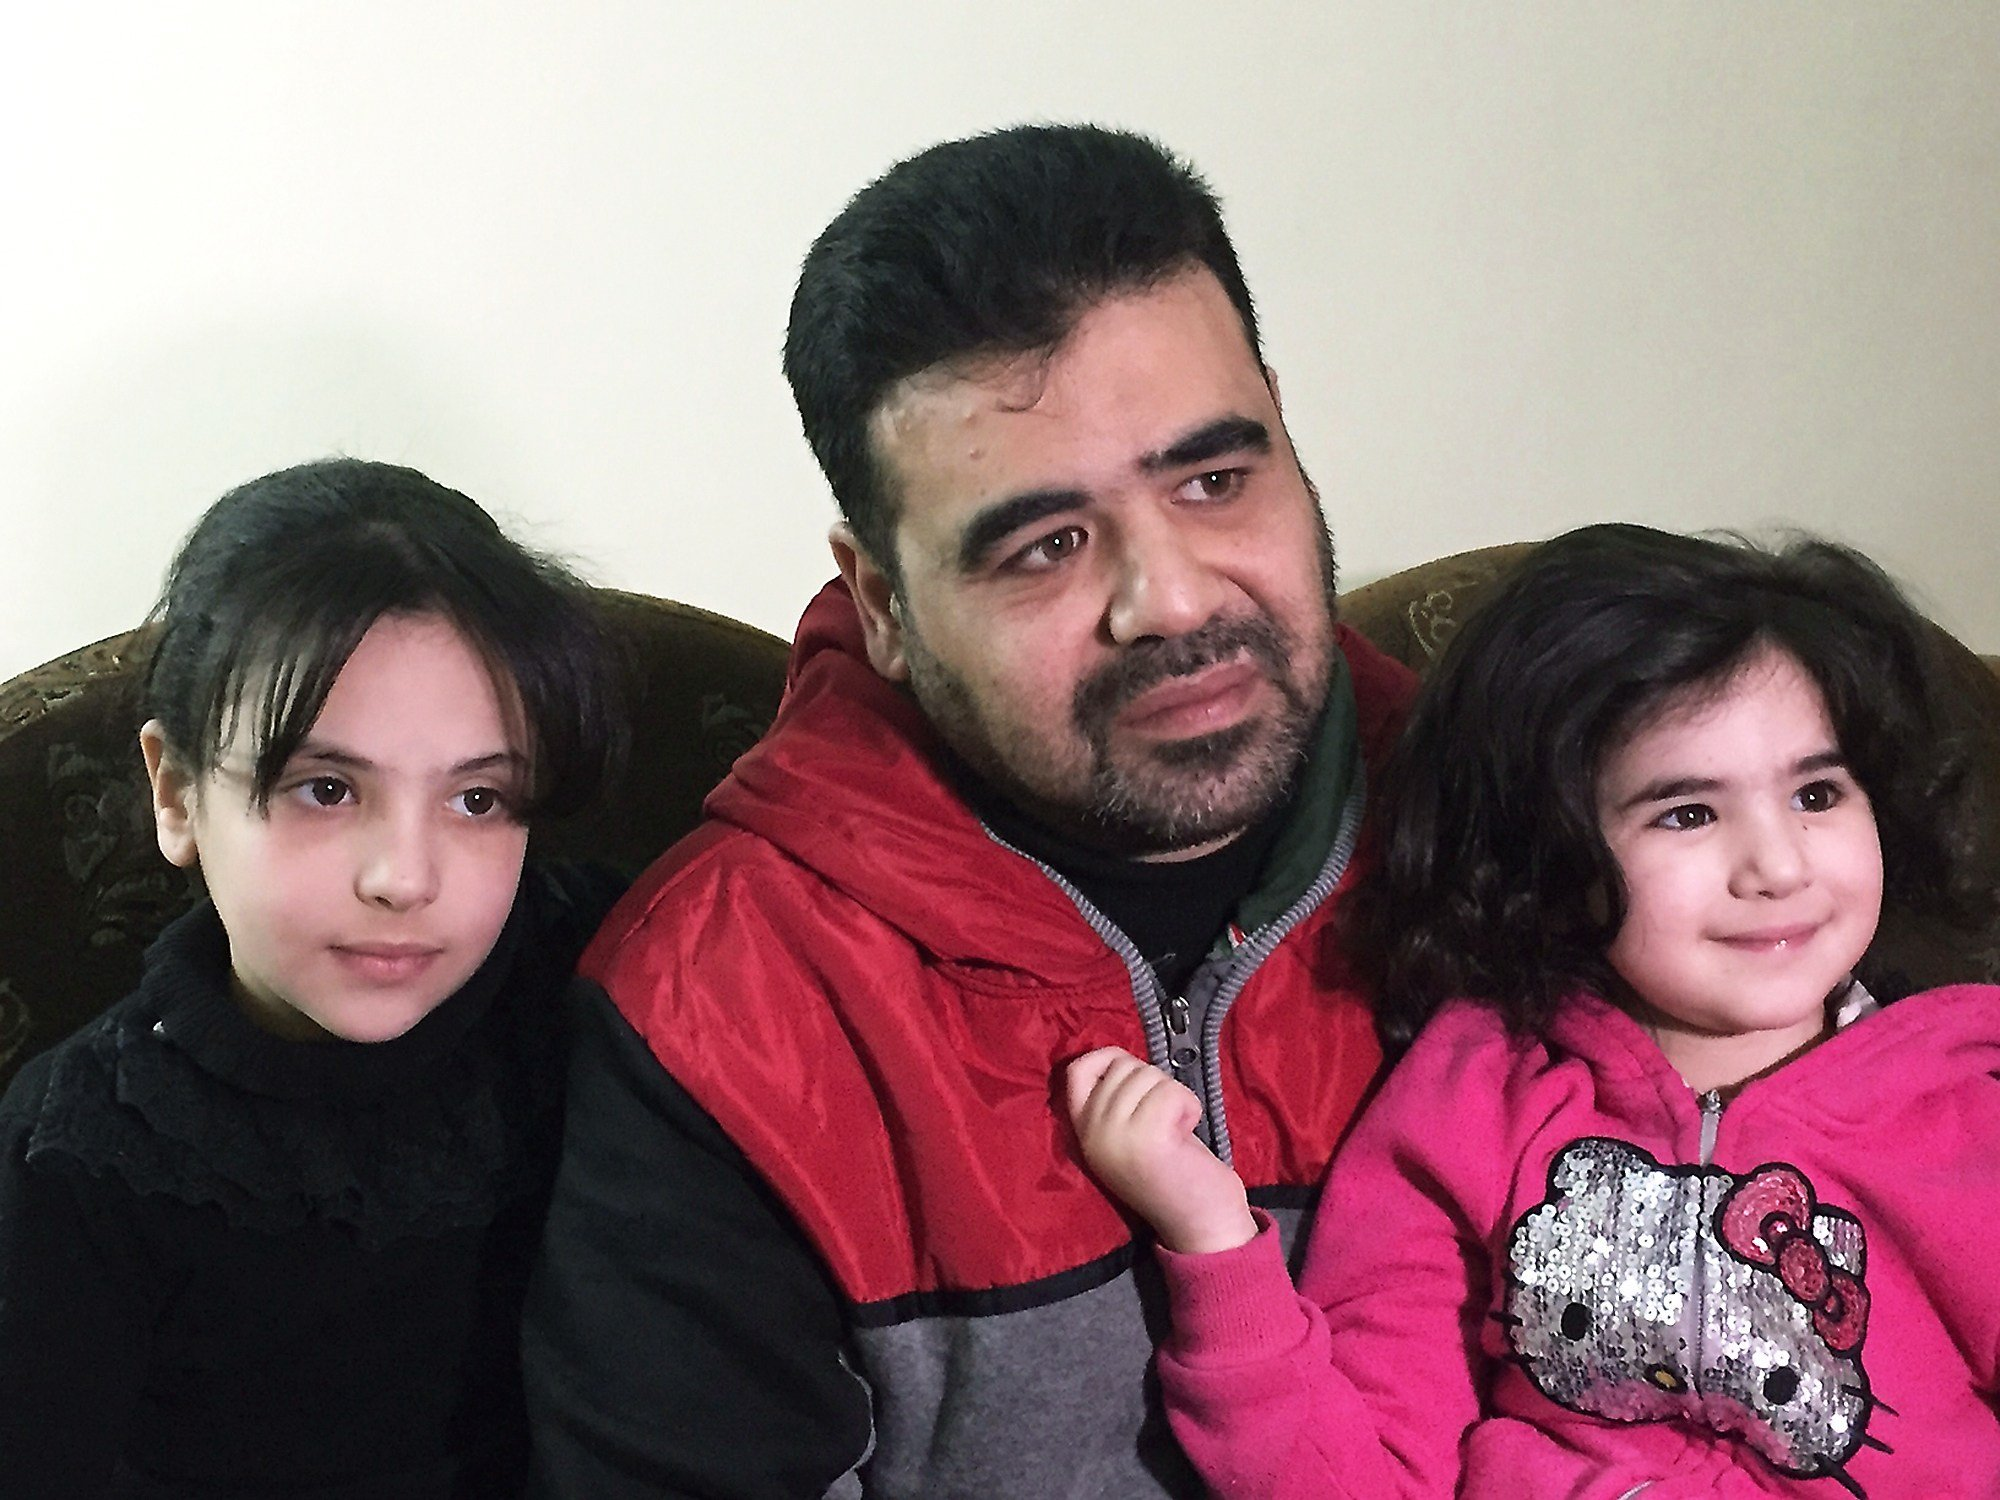 Syrian refugee Mahmoud Mansour has been undergoing vetting for resettlement to the U.S. for the past year, says he was devastated by the travel ban and remains confused about how the revised version could affect his future in the U.S. AP Photo/Karin Laub